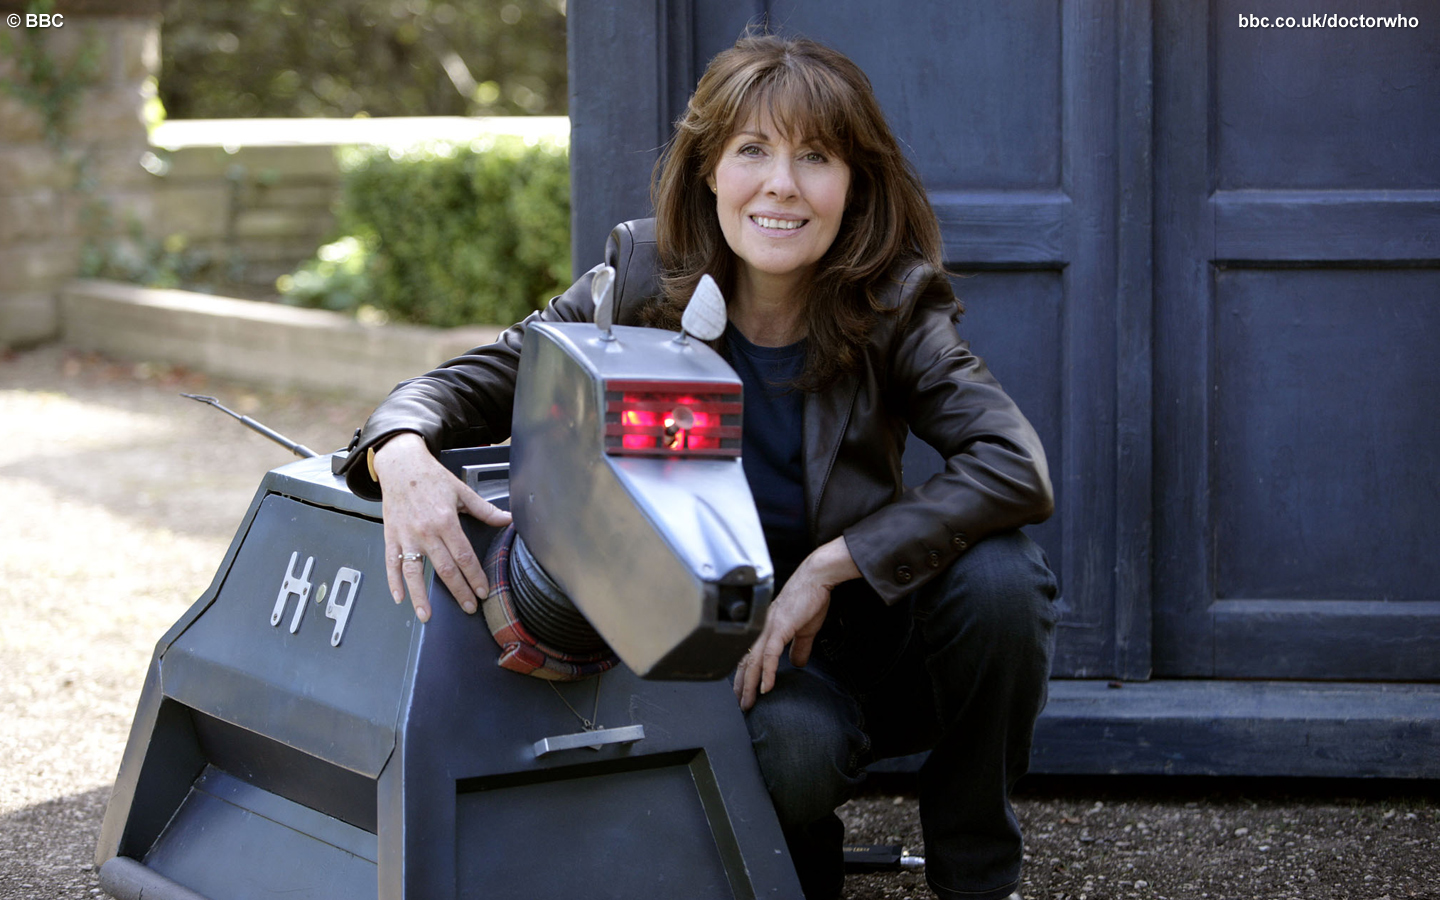 K9 Doctor Who